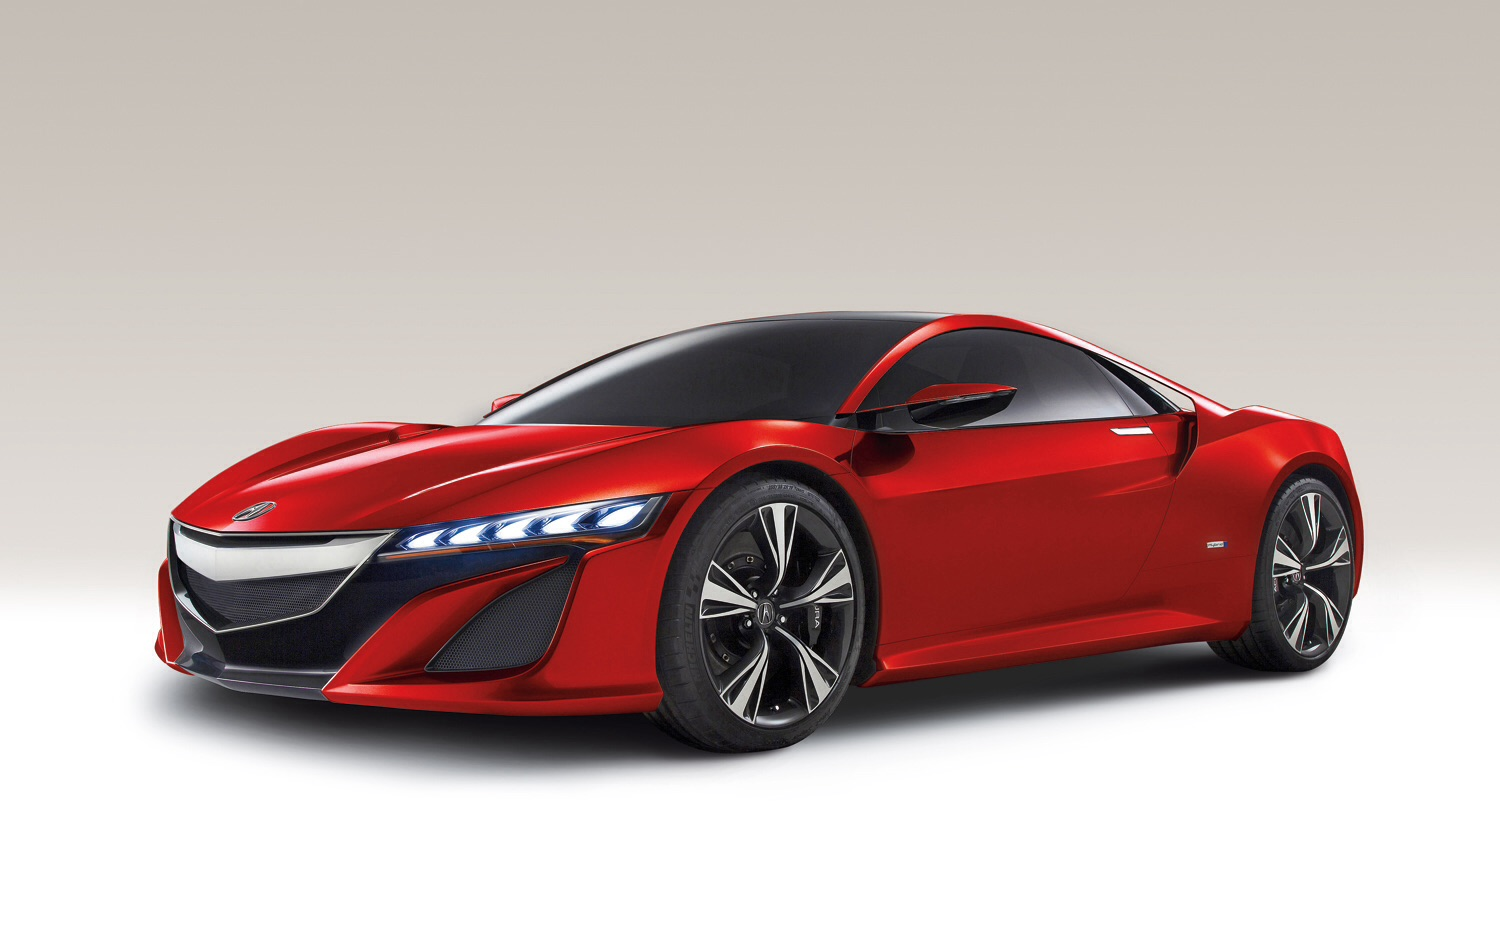 The 2017 Acura Nsx Is Possibly The Most Beautiful Car Ever